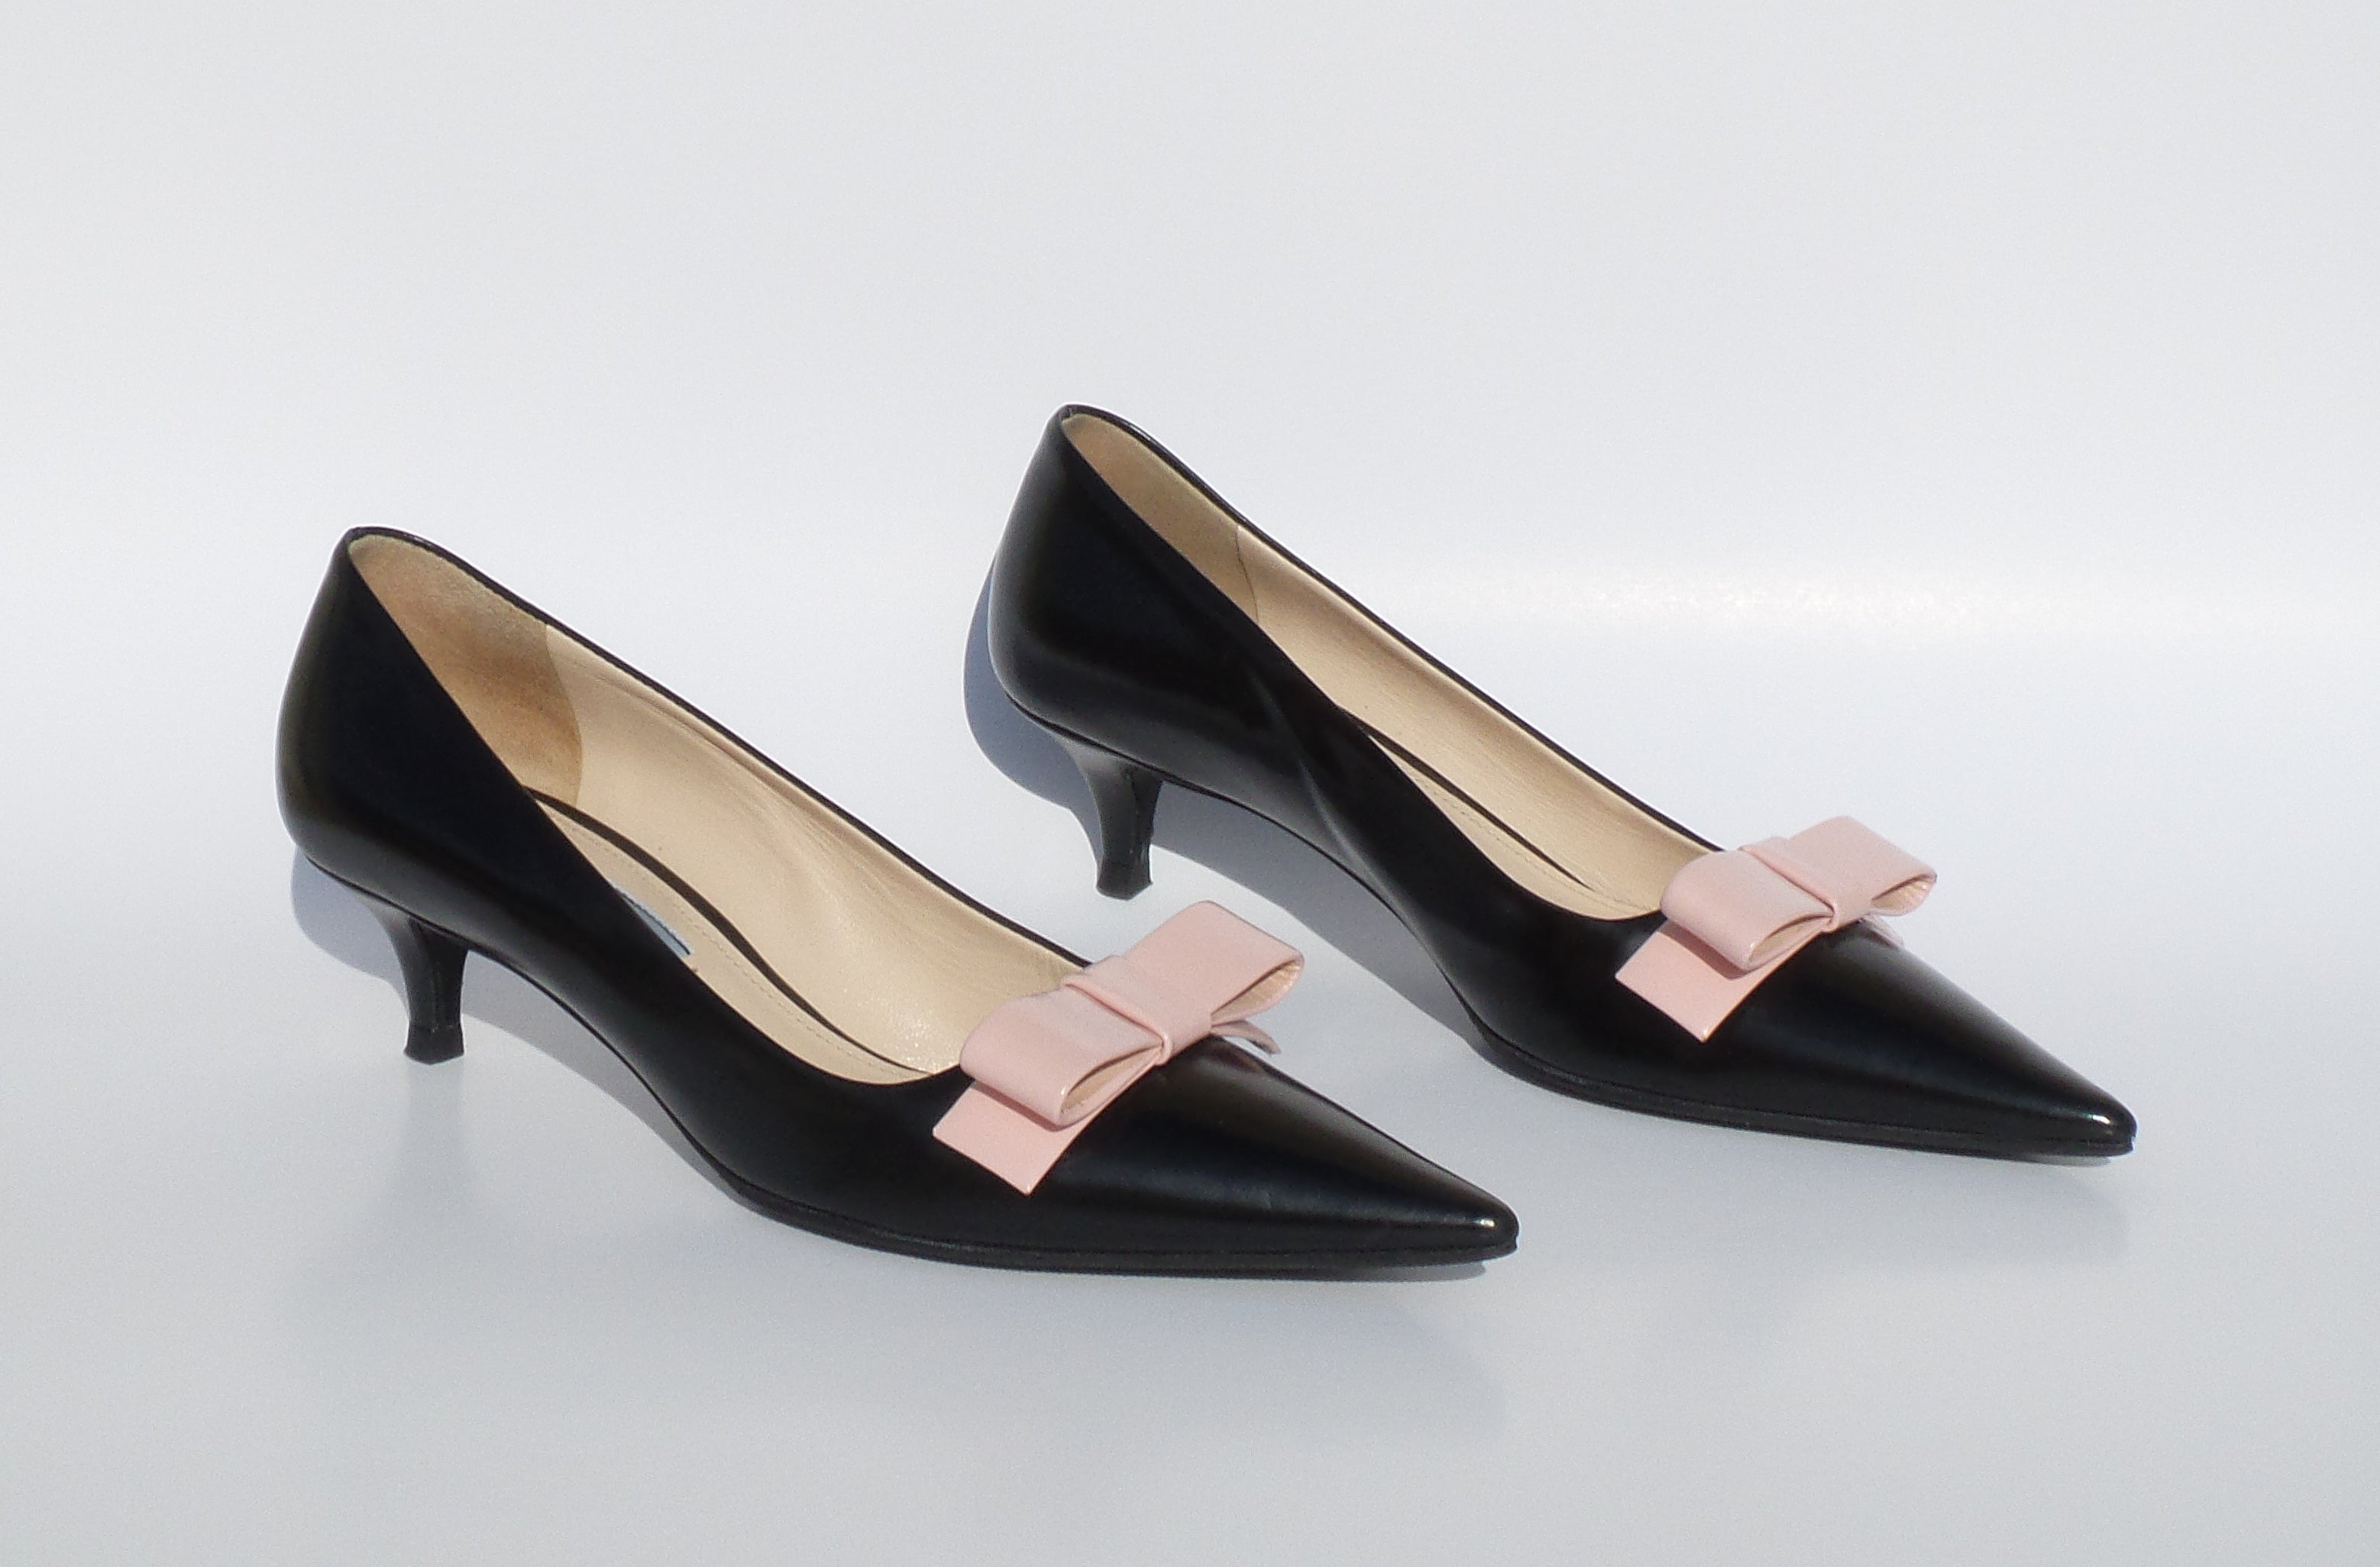 PRADA Black Polished Leather Rose Pink Bow Mid Kitten Heel Pumps 36